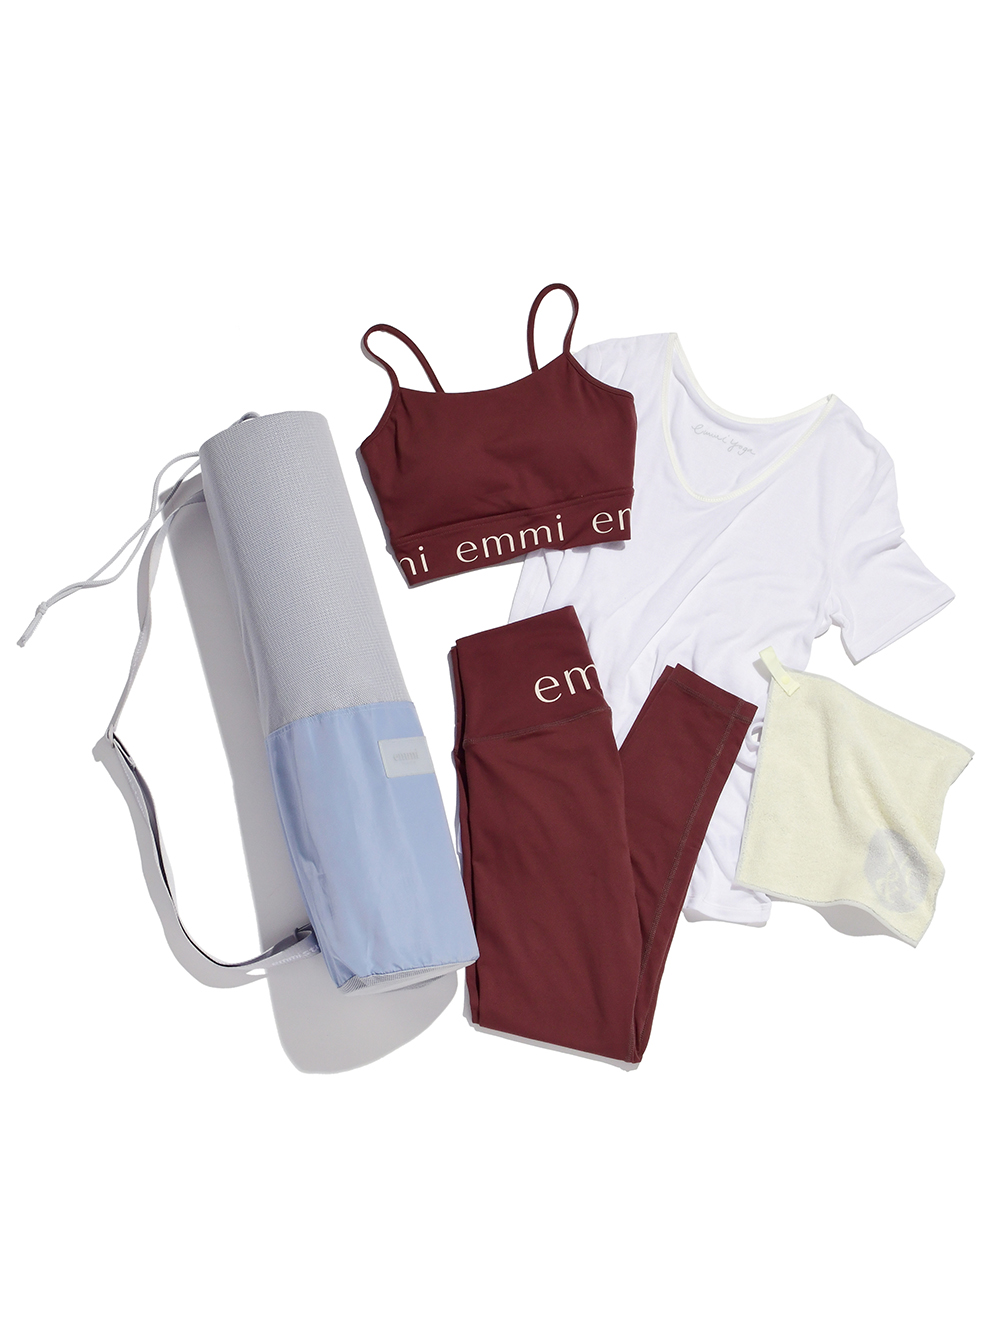 【emmi yoga】#STAY HOME WELLNESS YOGA PACK